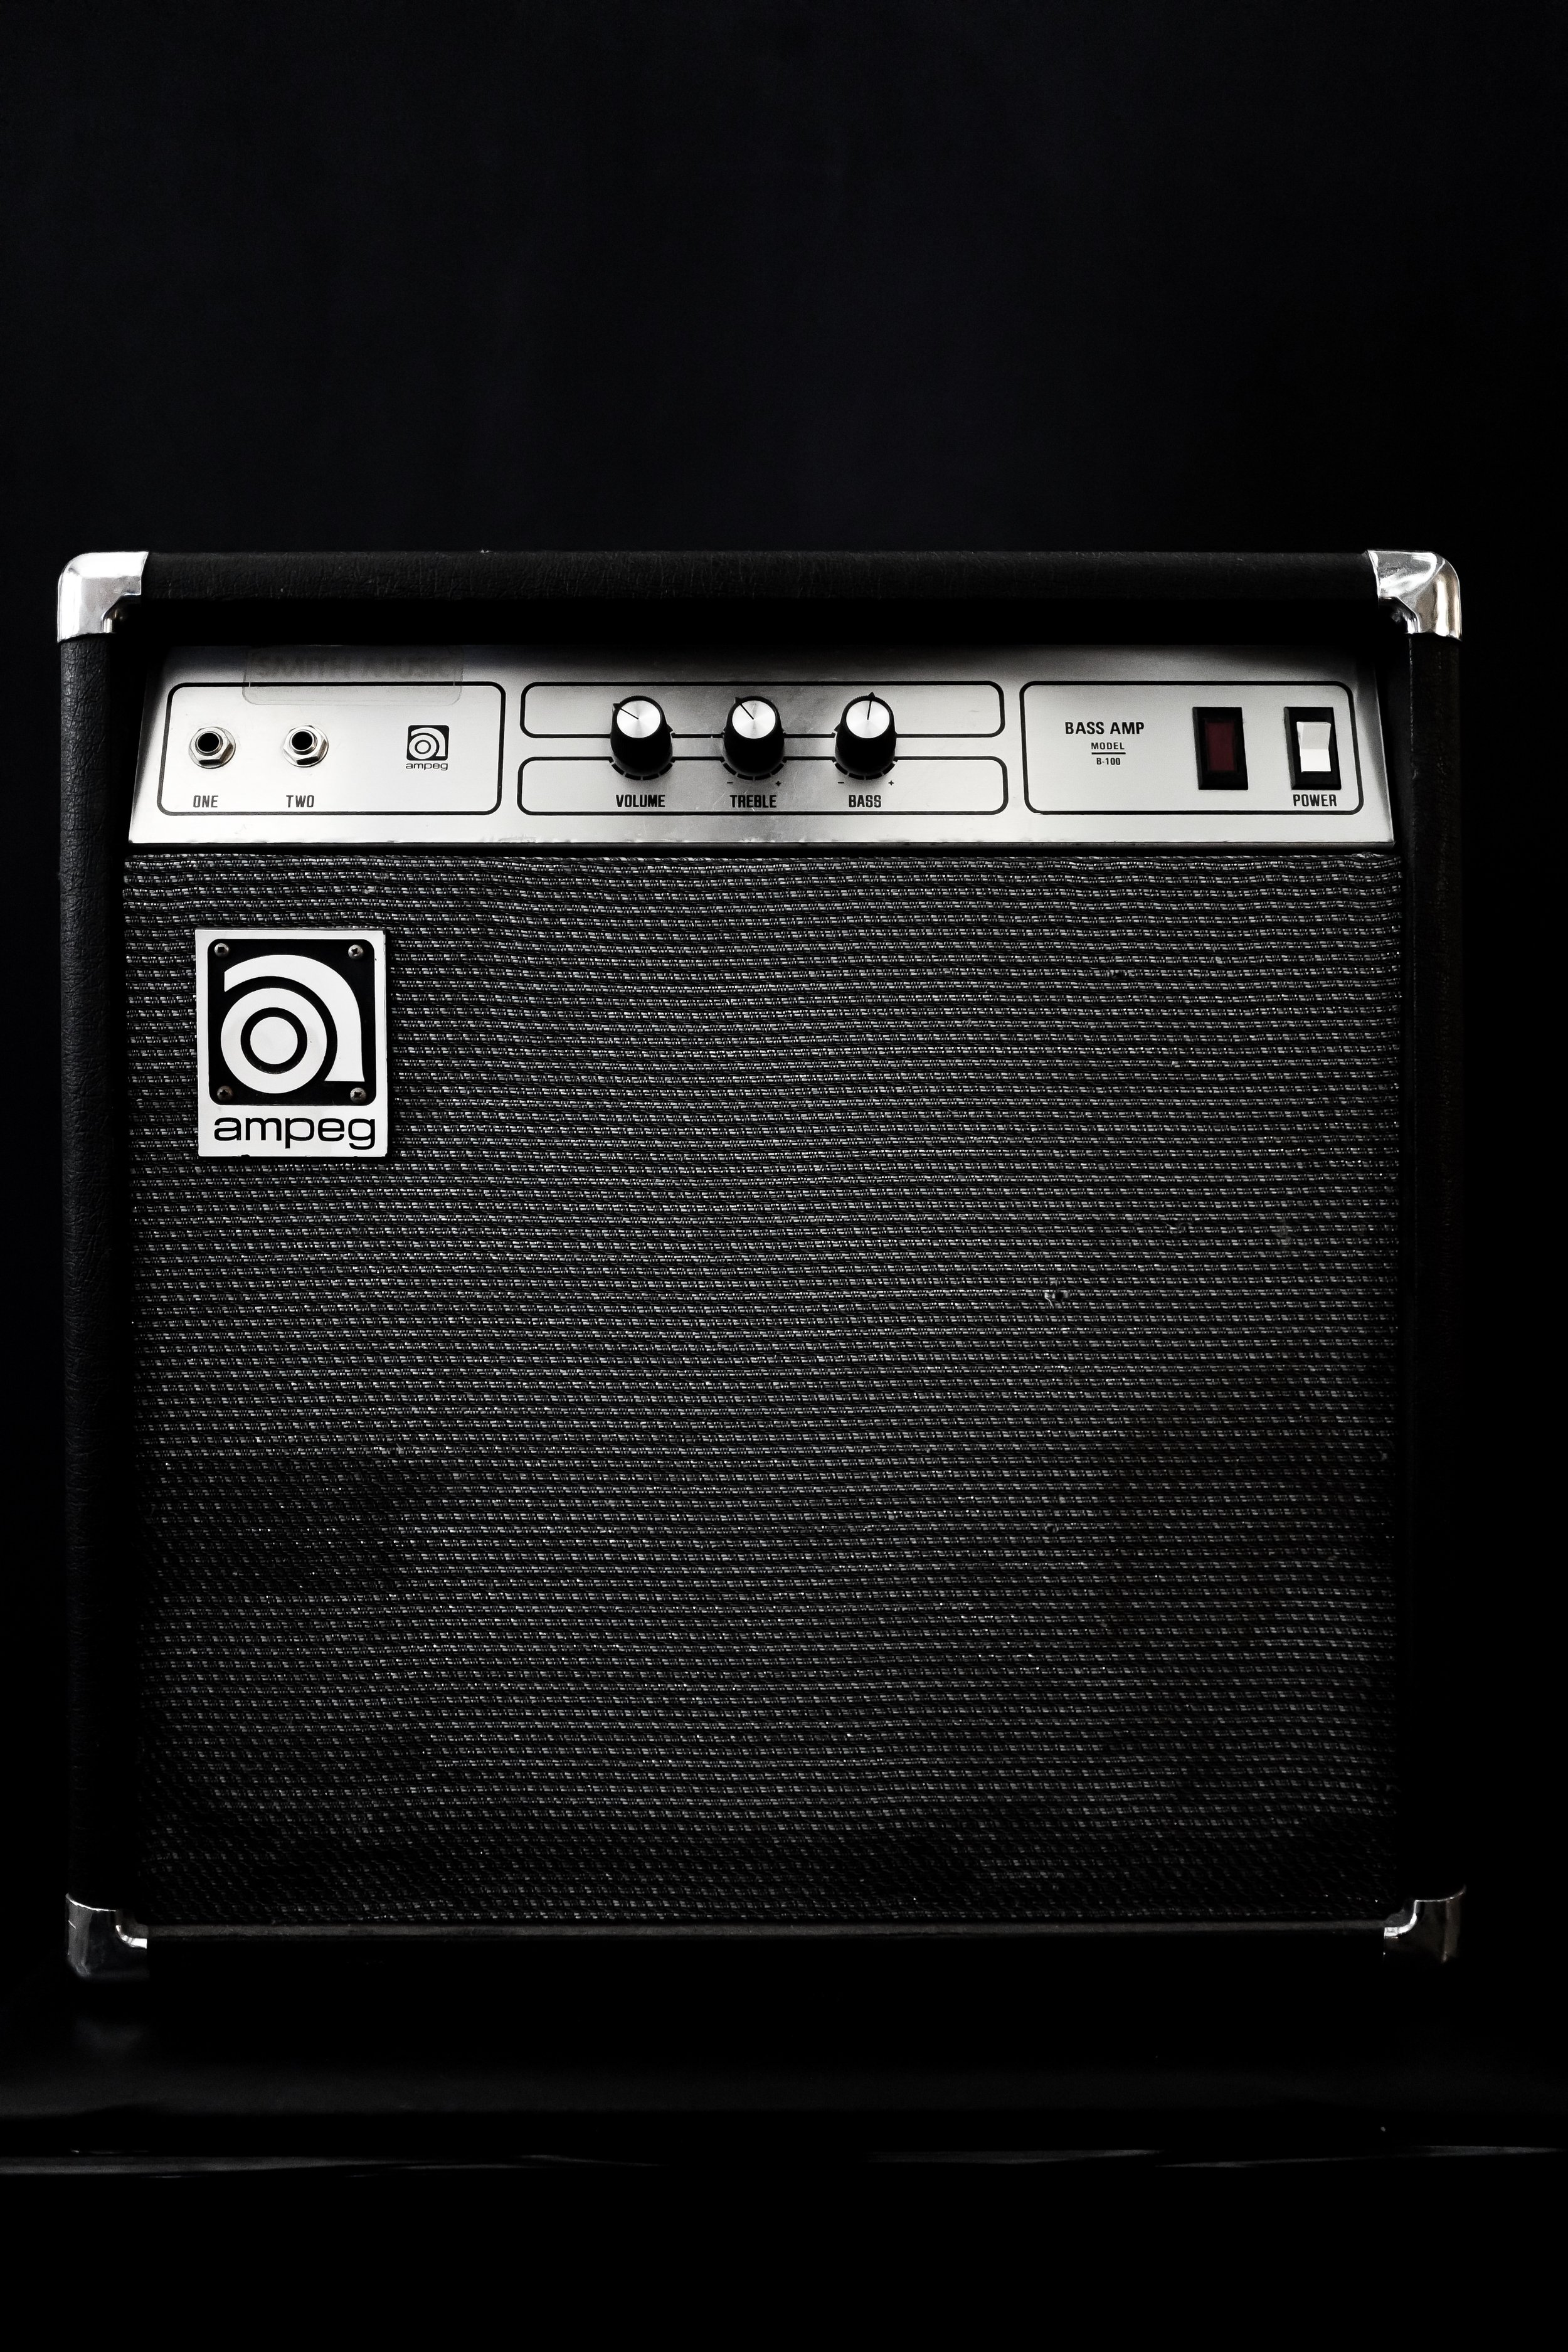 Ampeg Solid State - When your find on craigslist turns out to not be a serial killer.